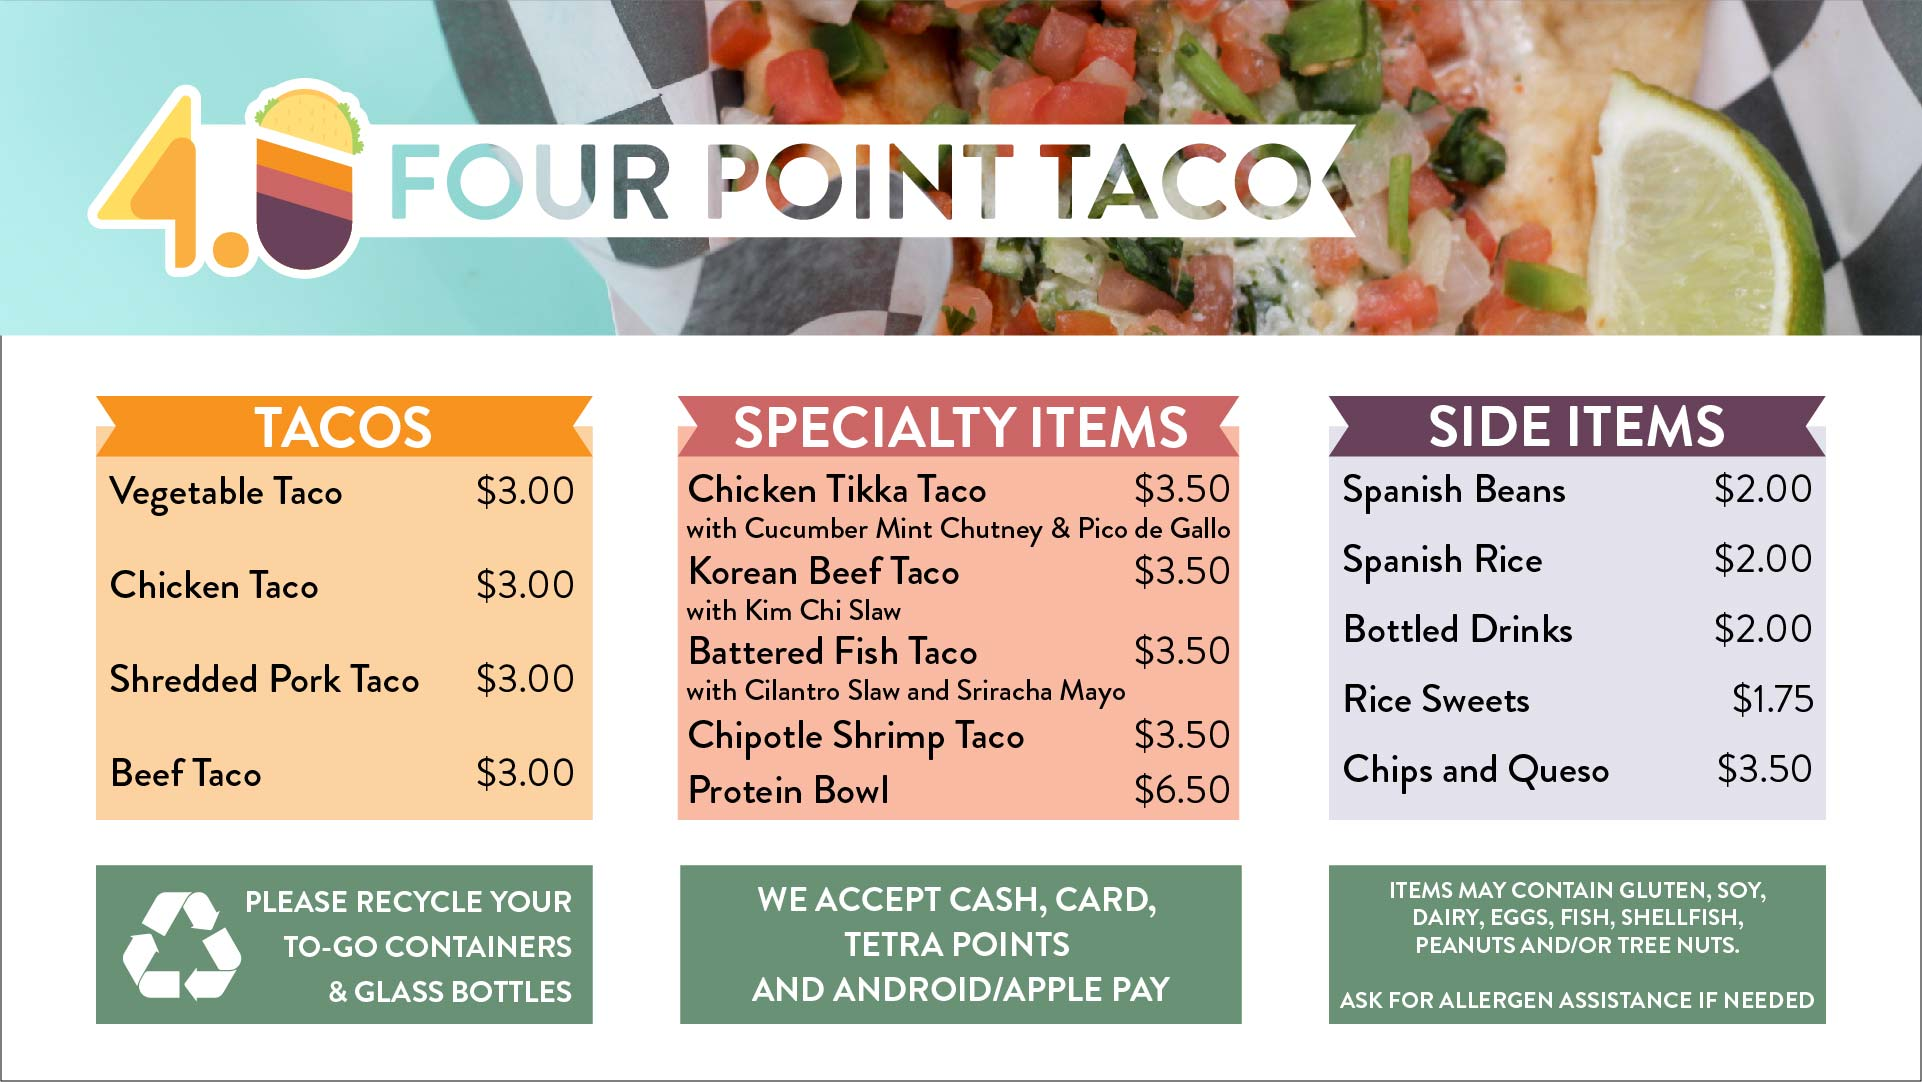 4PointTaco-Lunch_Updated-5_17_2018-04.jpg